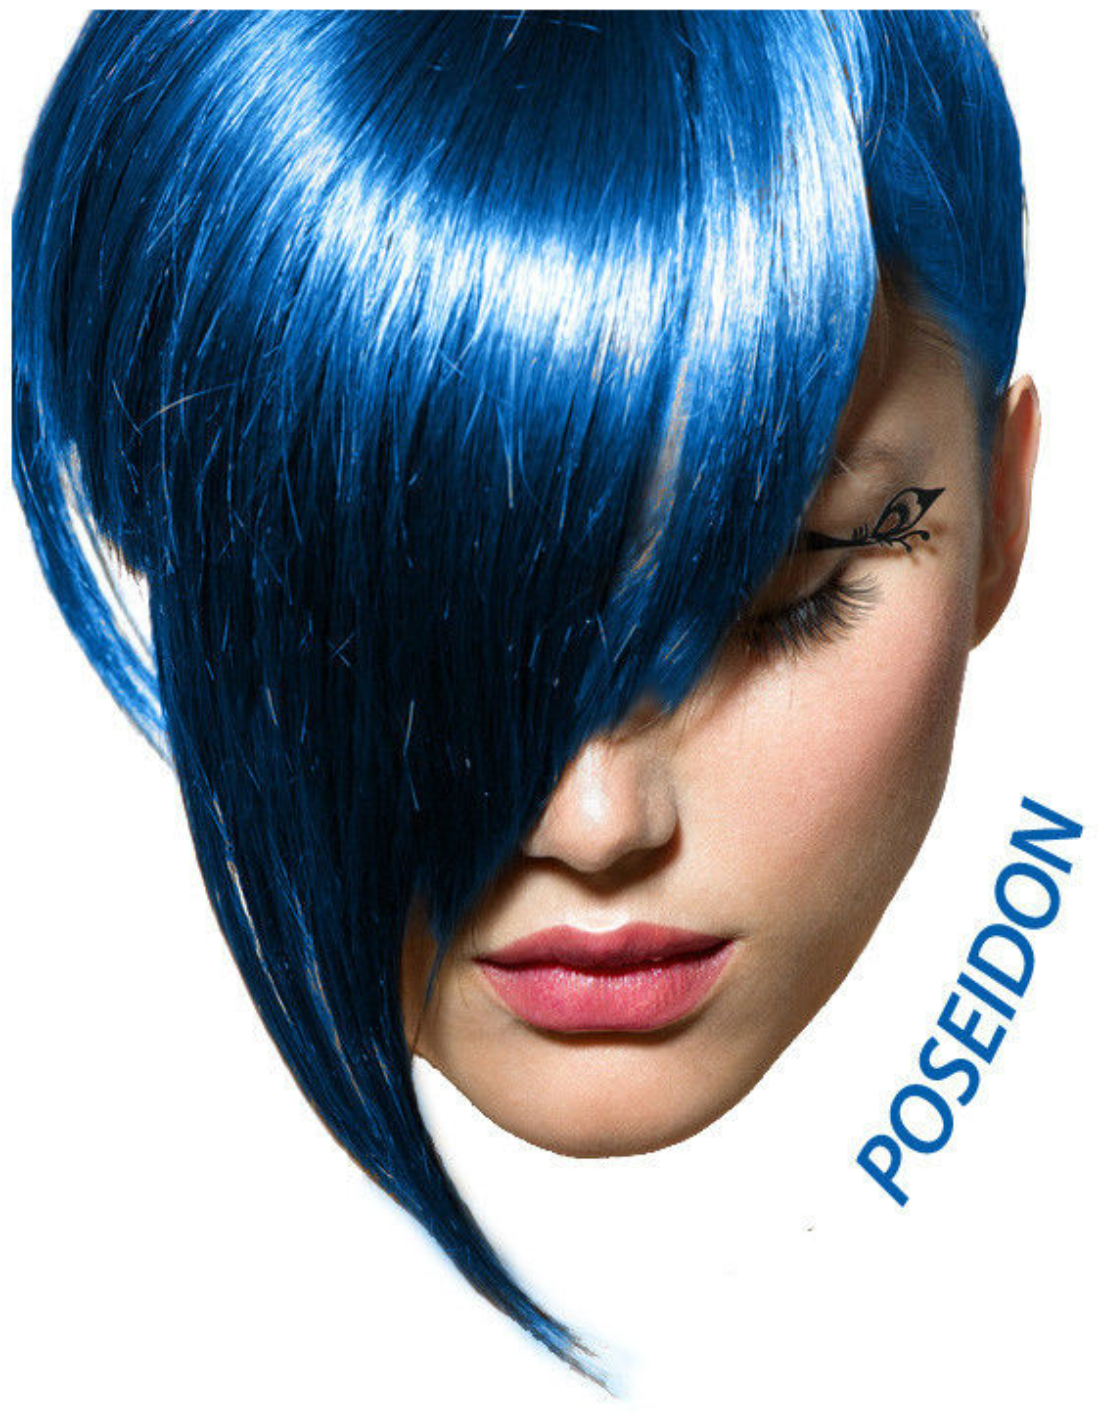 ARCTIC FOX - POSEIDON Vegan Hair Dye 4 oz.